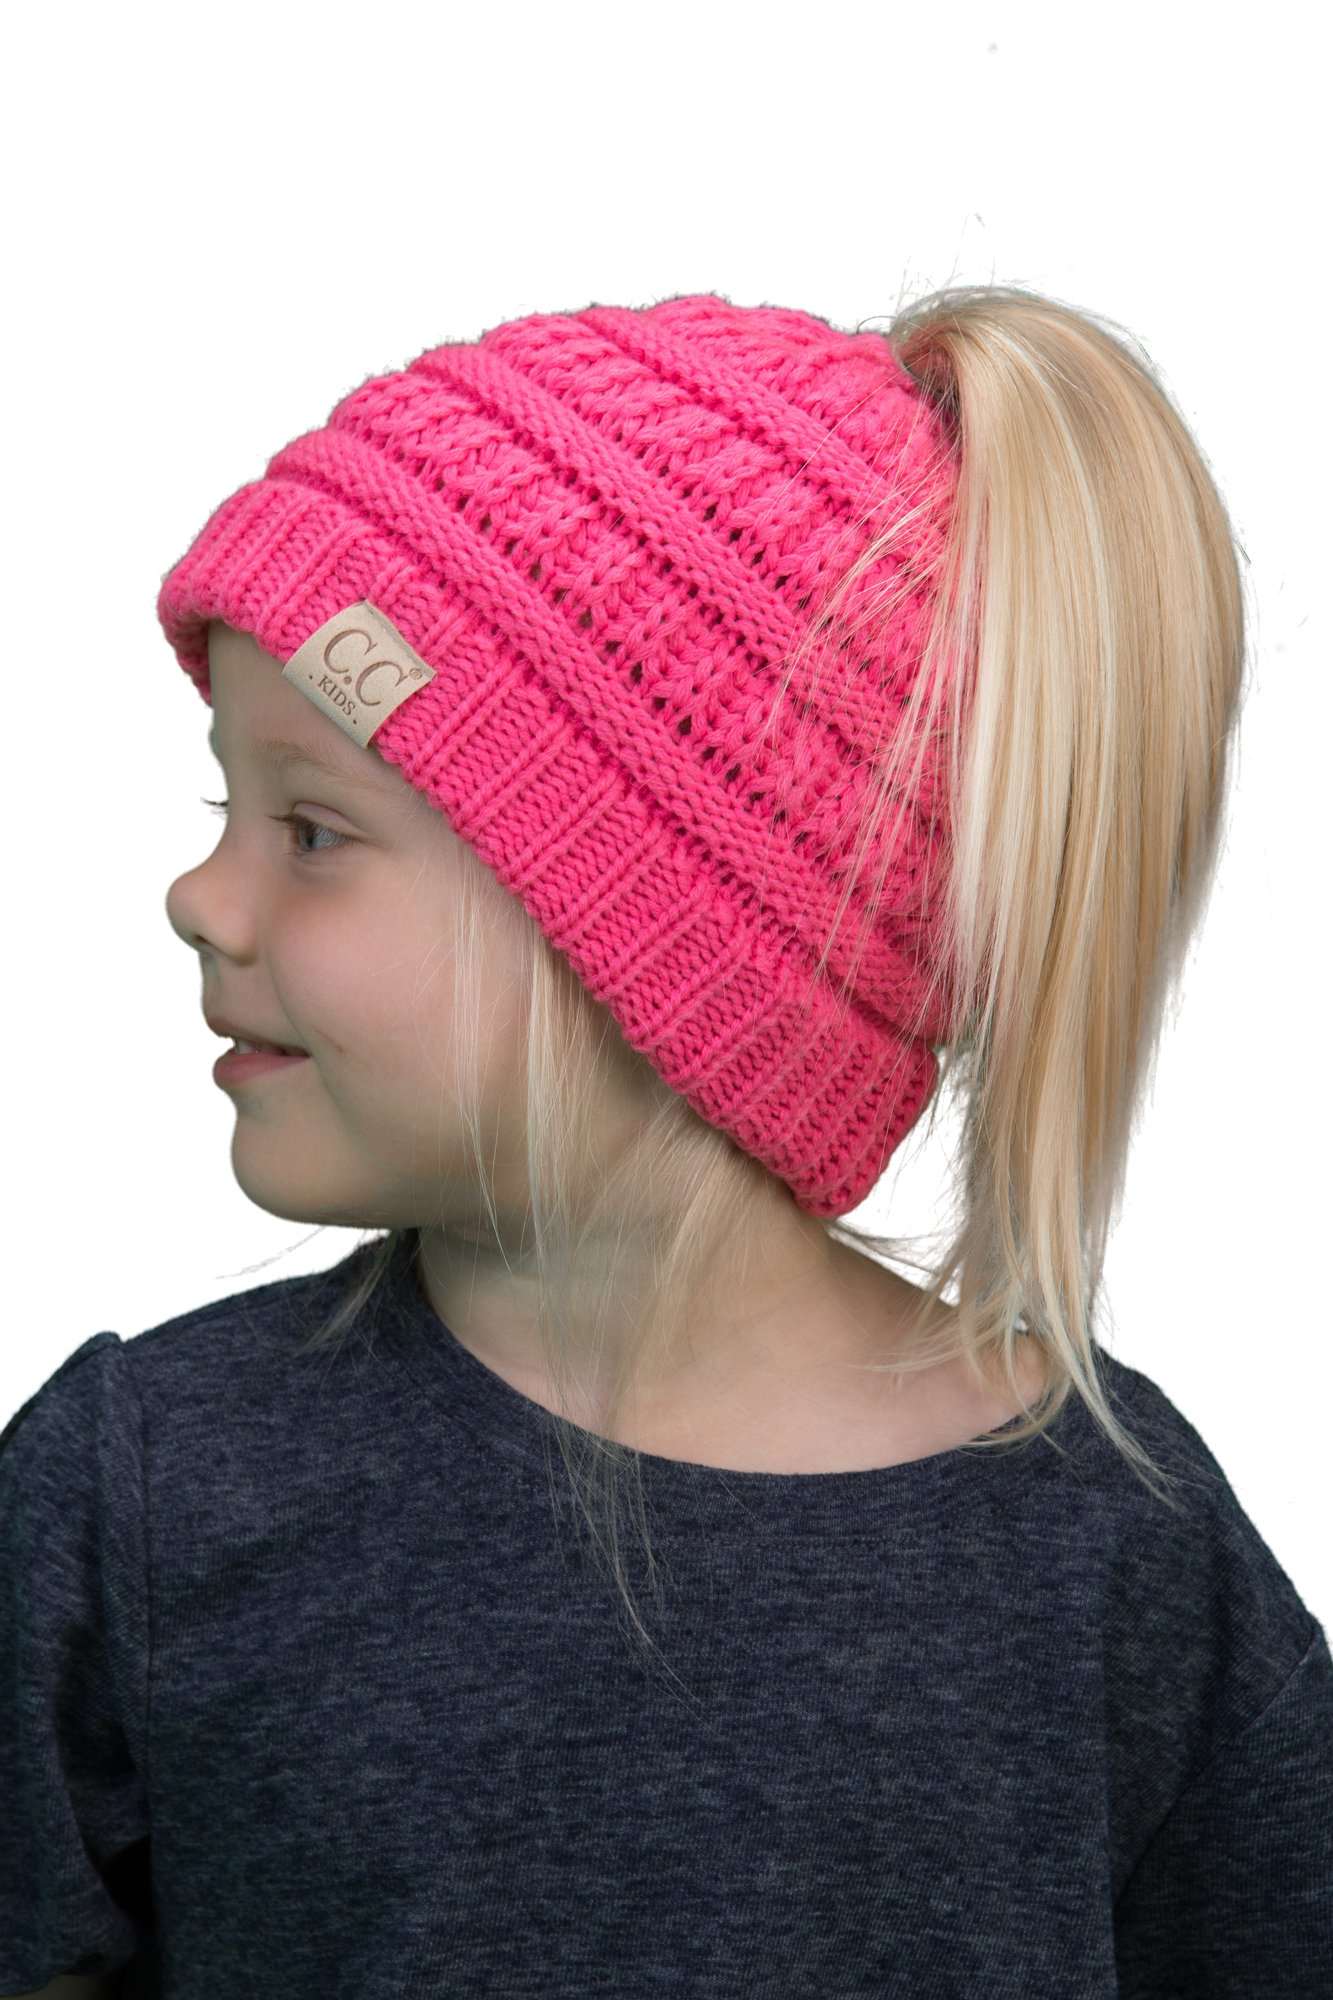 Knitting Pattern White Hat with Pink Fans for a Girl (12 months, 2-4 years)